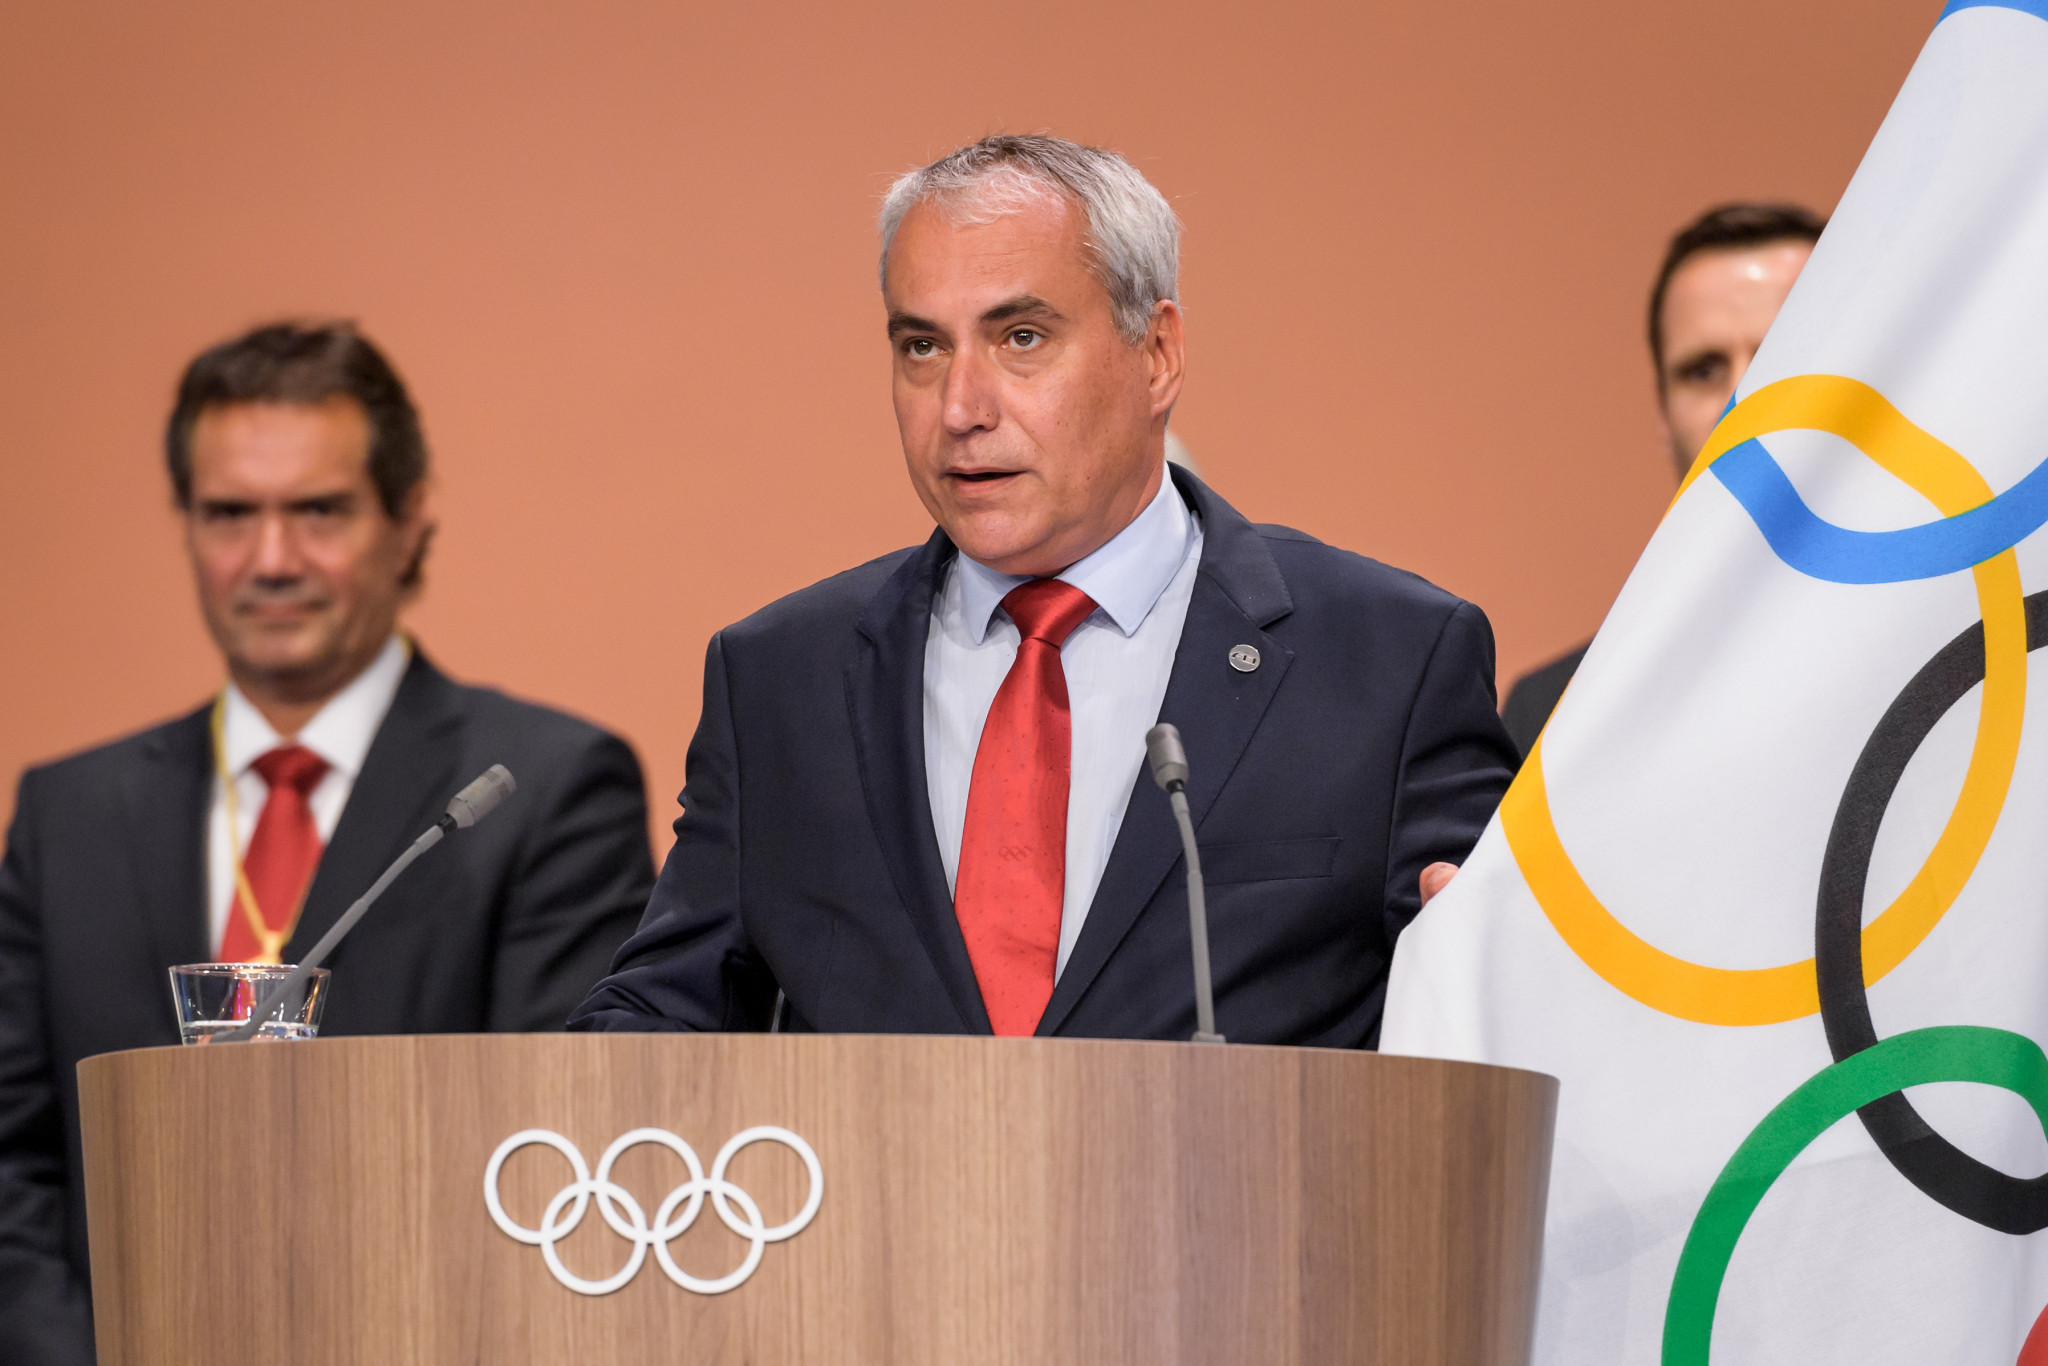 Ingmar De Vos became a member of the International Olympic Committee last year ©Getty Images